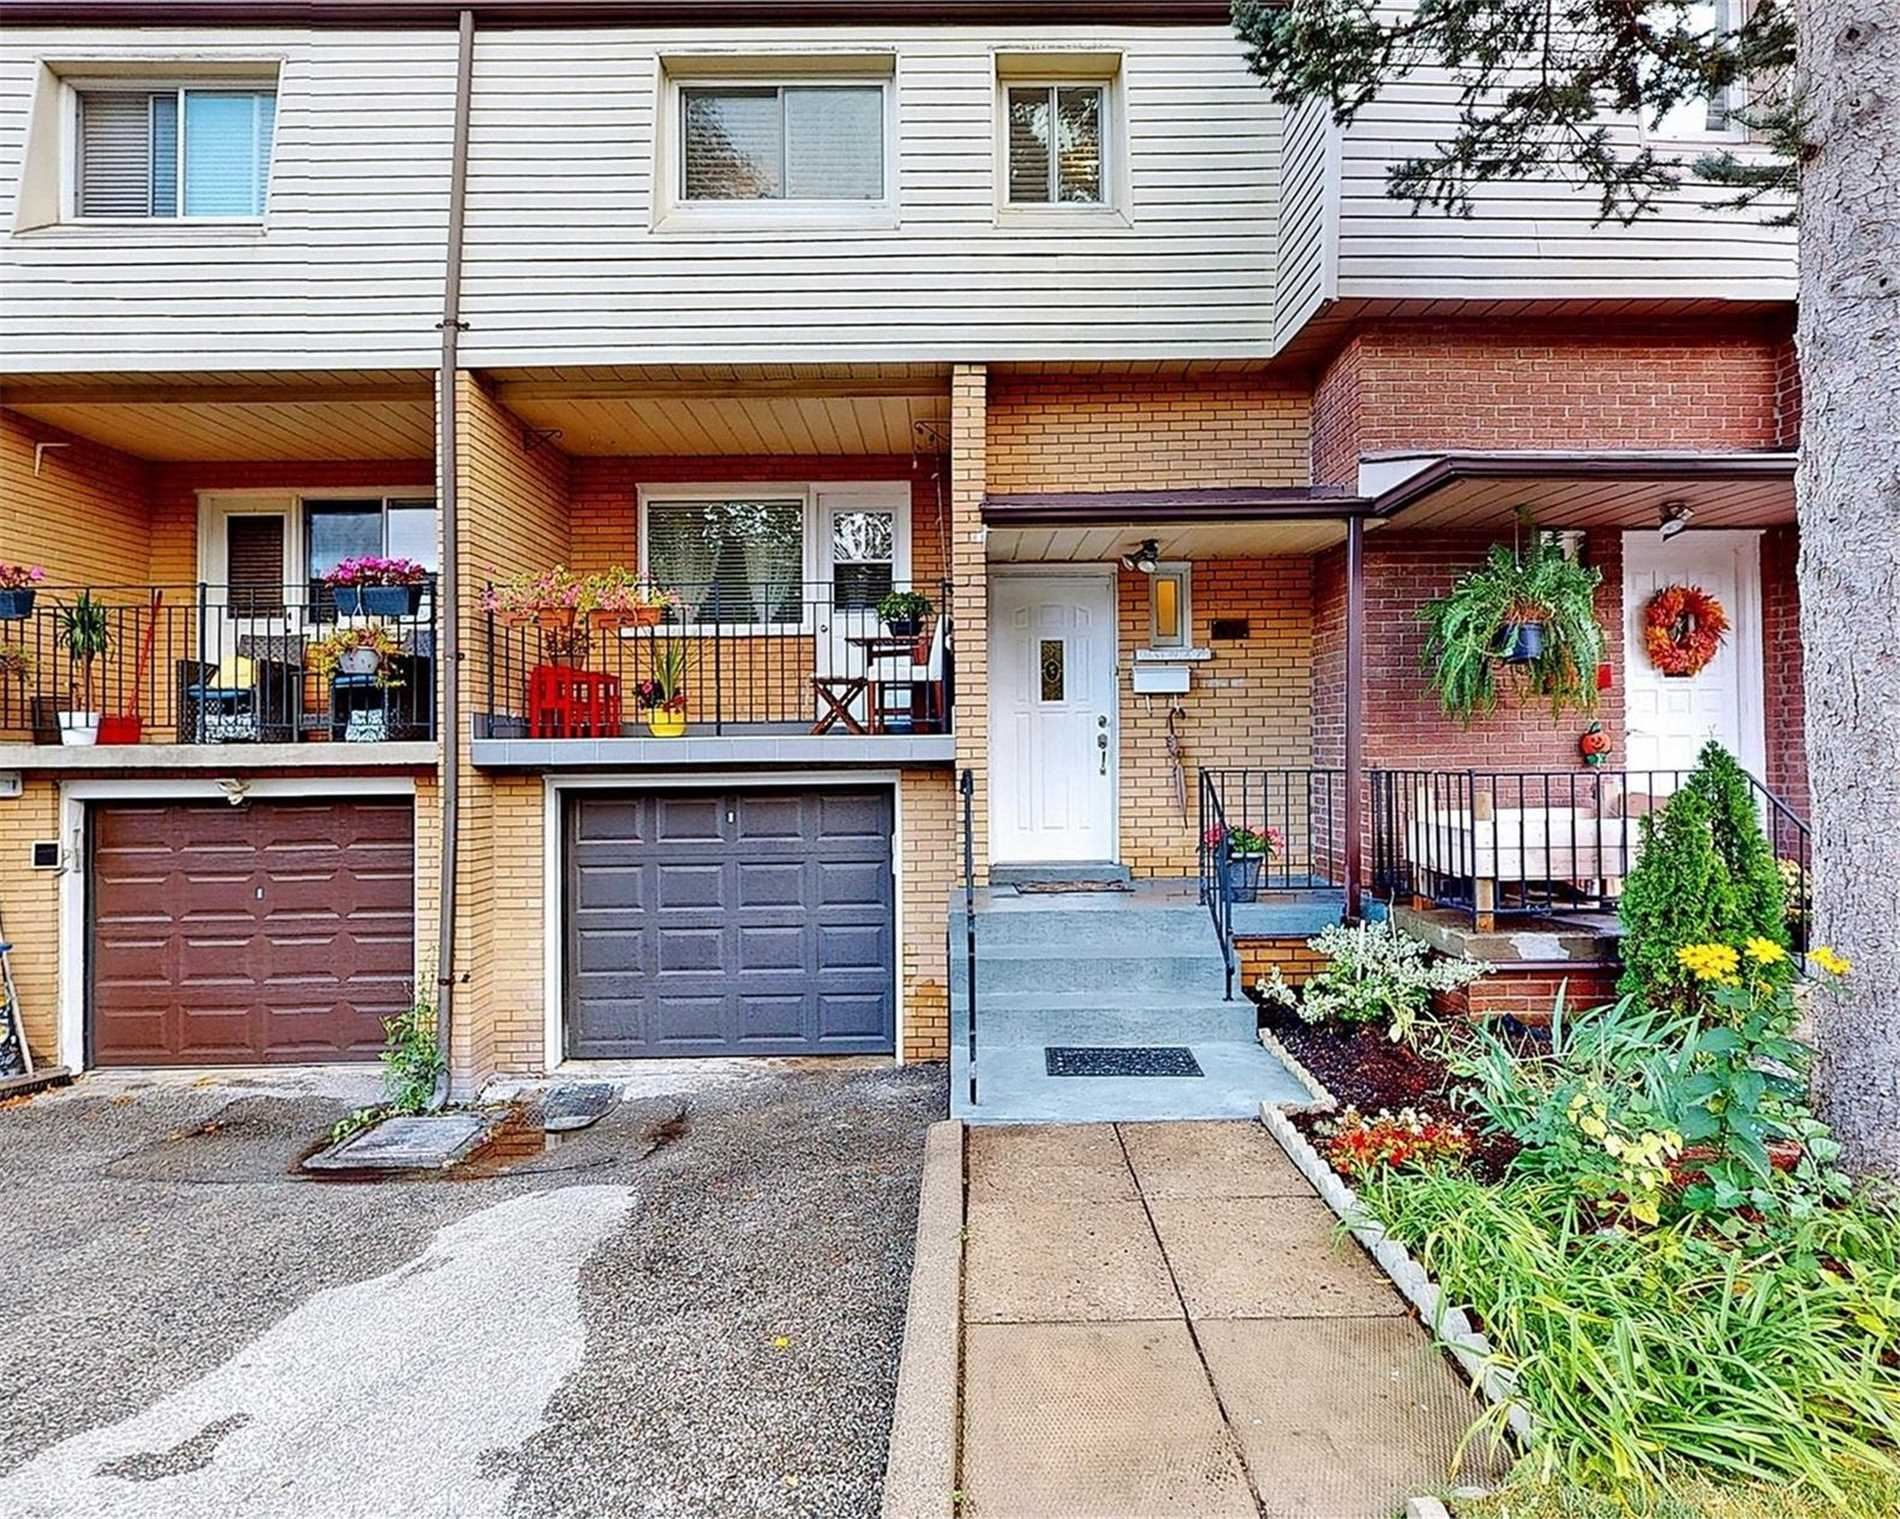 3175 Kirwin Ave #86, Mississauga, ON L5A3M4 - MLS#: W5406495